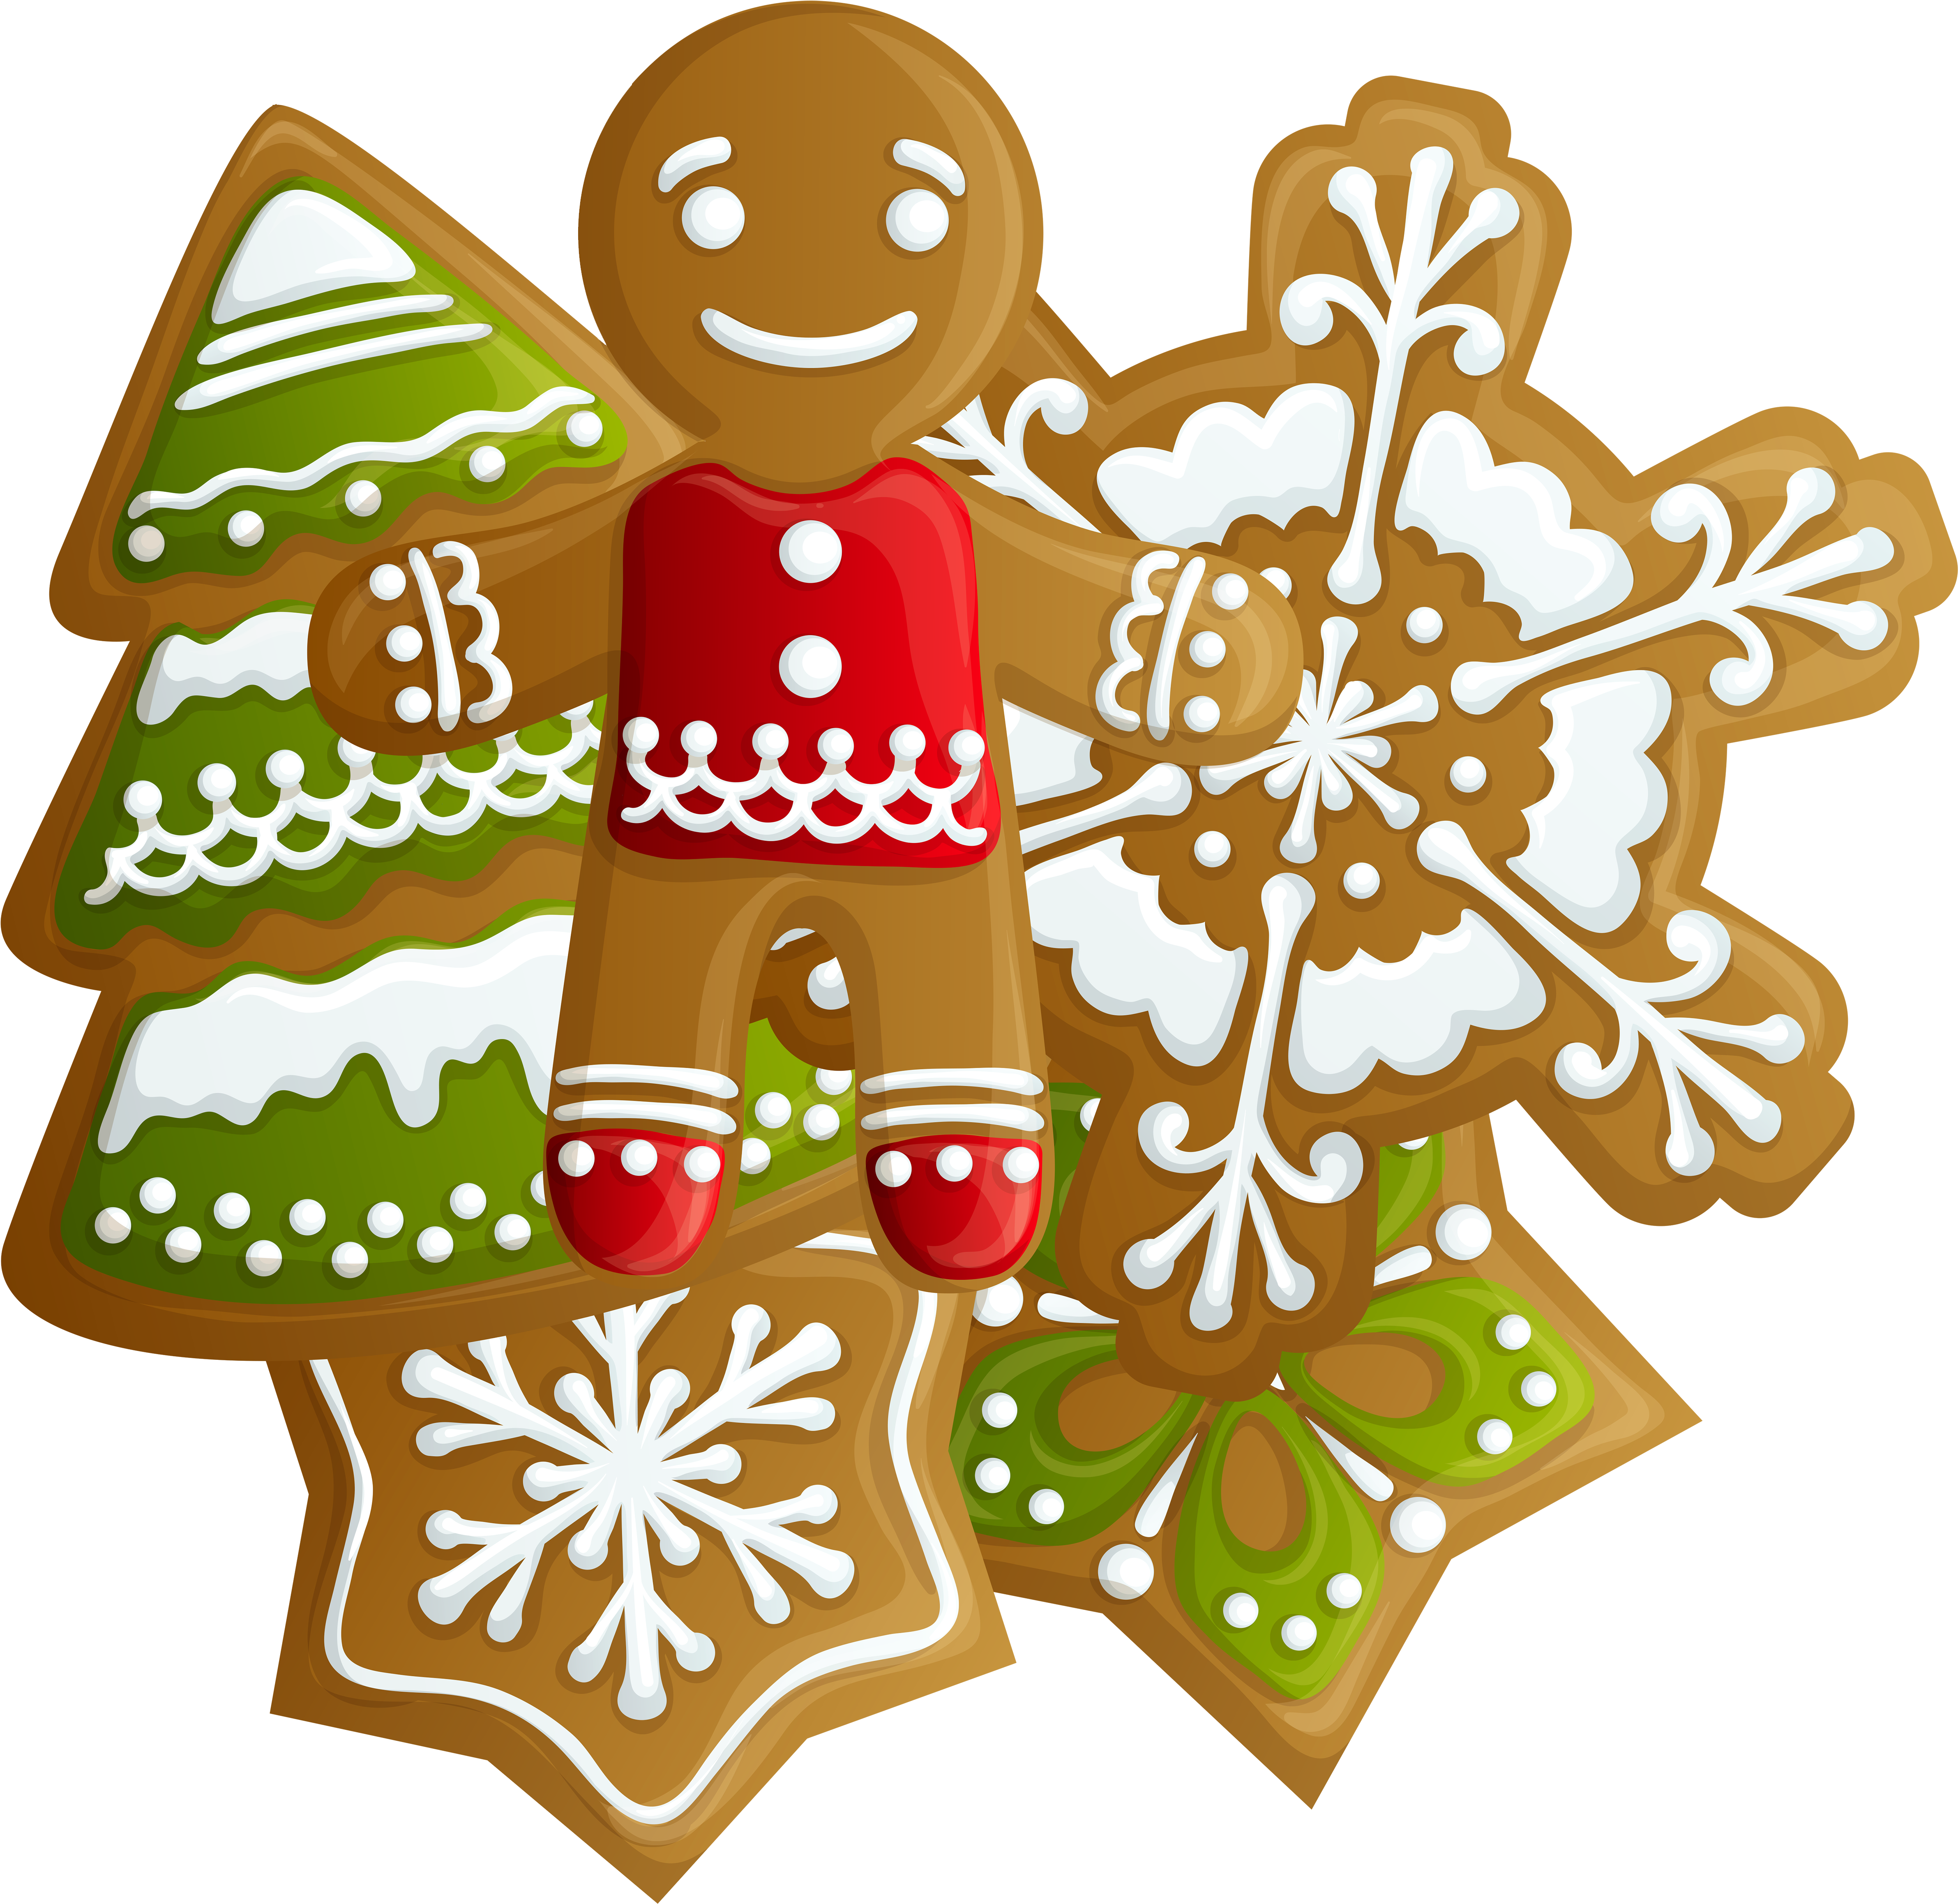 Baking Christmas Cookies Clipart.Baking Clipart Xmas Christmas Cookies Clipart